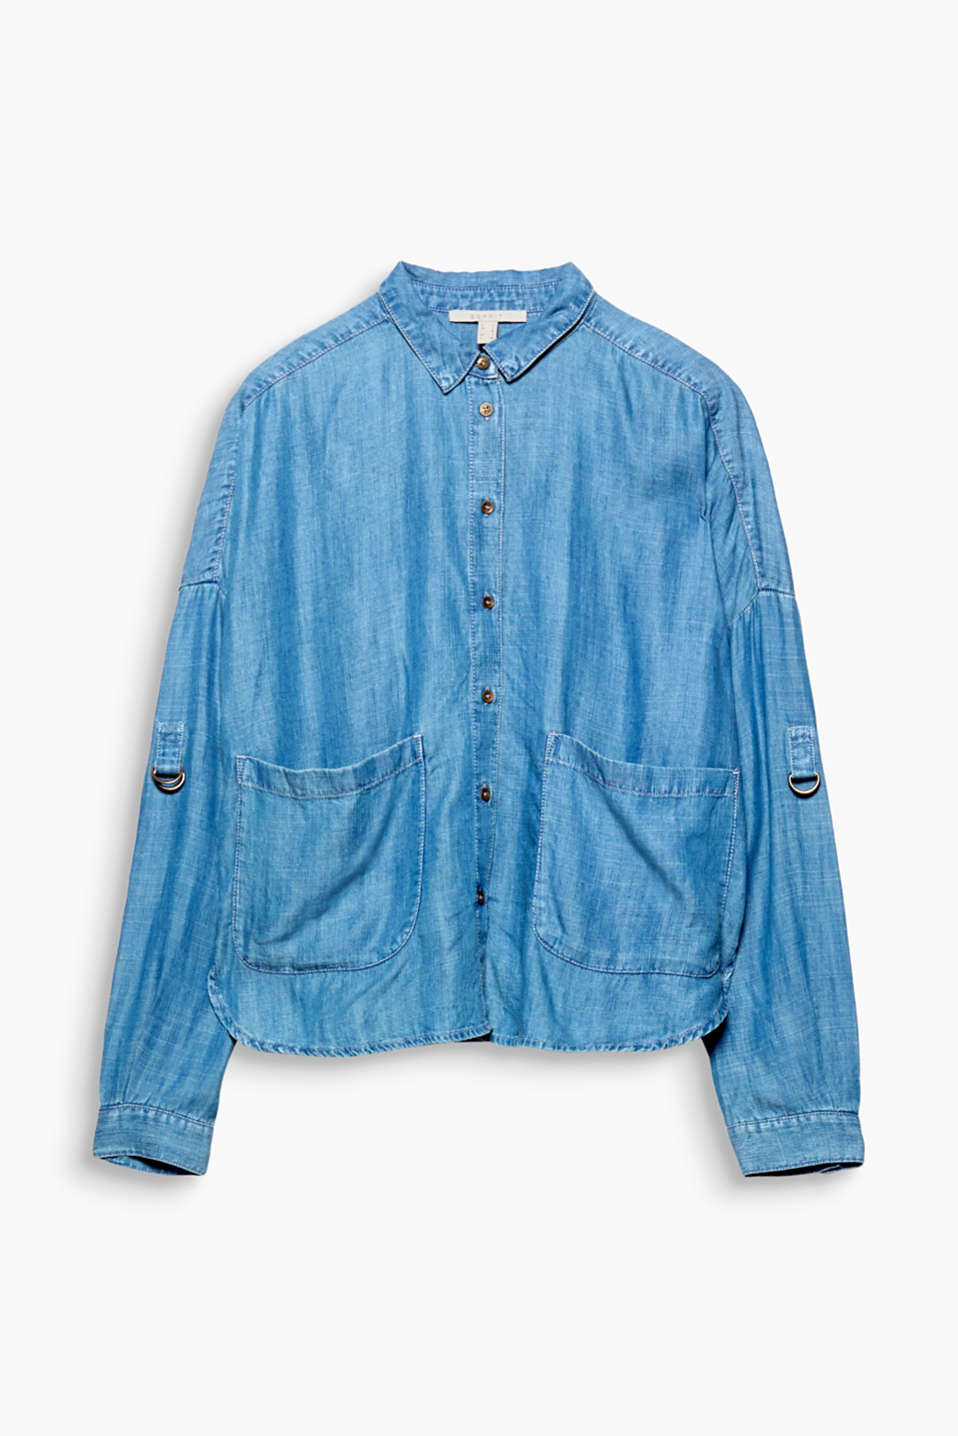 This wide and boxy, oversized blouse in flowing lyocell with a pale denim finish and turn-up sleeves is unbeatably casual!